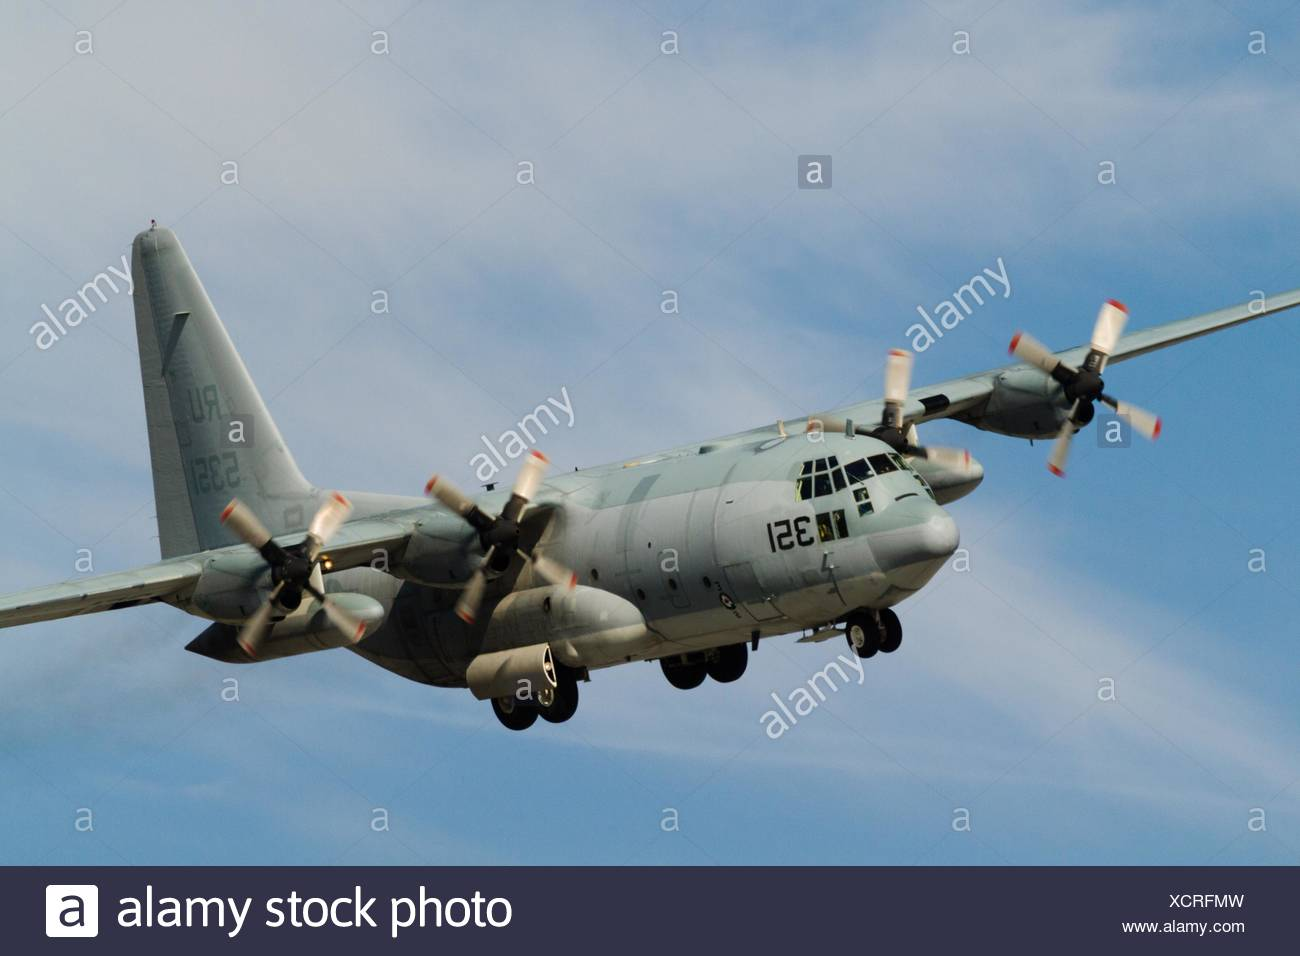 C-2A Greyhound is a high wing, twin-engine monoplane cargo aircraft, designed to land on aircraft carriers. - Stock Image